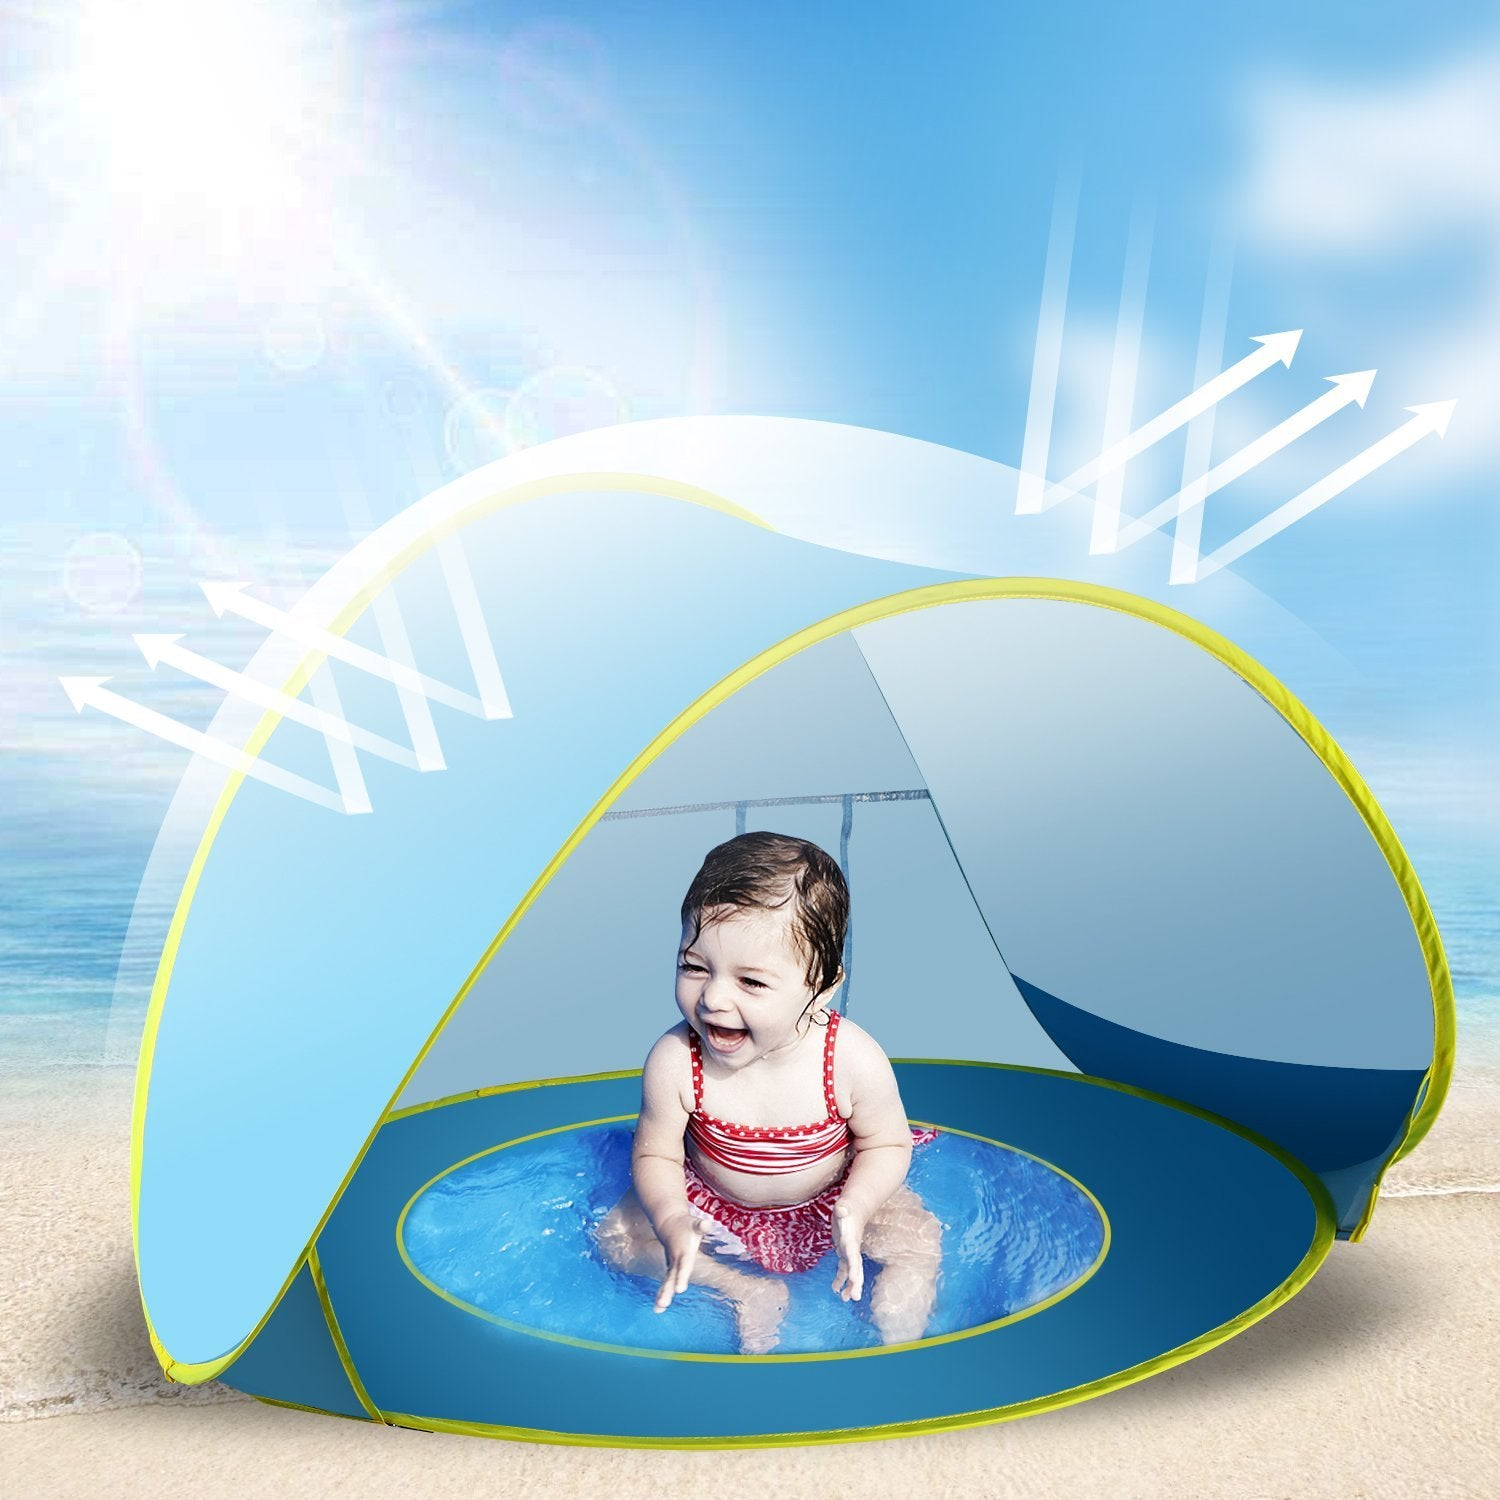 Pop Up Baby Beach Tent Portable Infant Sun Shelter Play With Kiddie PoolUV Protection By VicPow